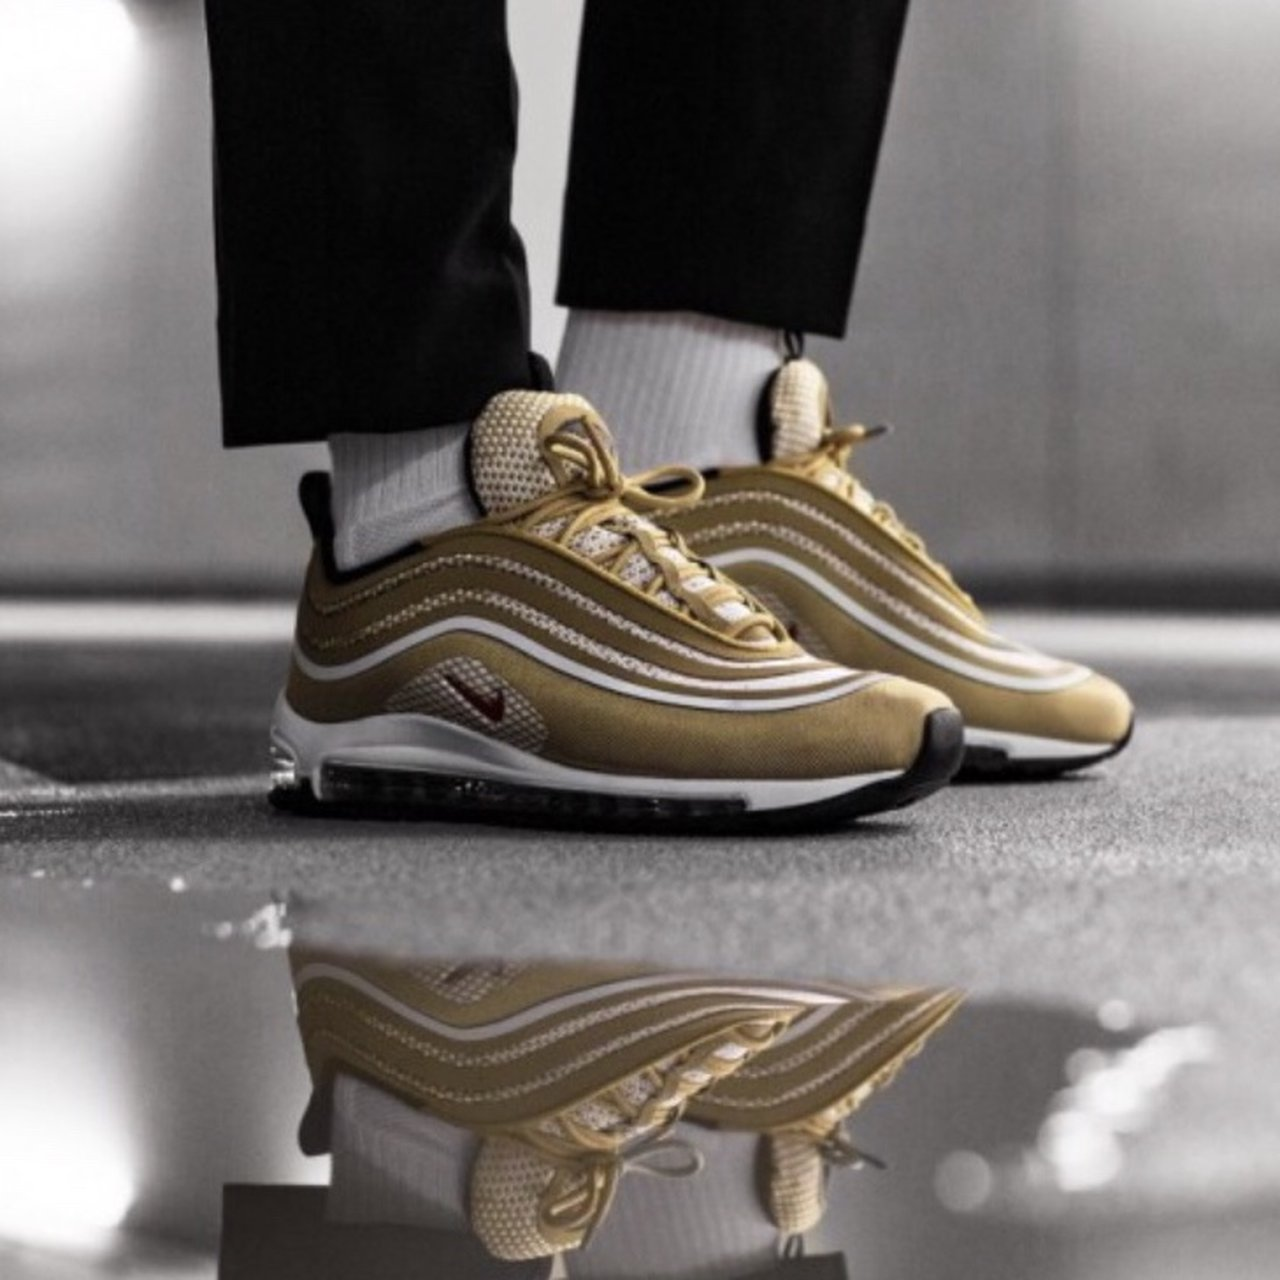 Nike Air Max 97 Ultra  17 Trainer - Metallic Gold Size UK 10 - Depop 7394cdad585e